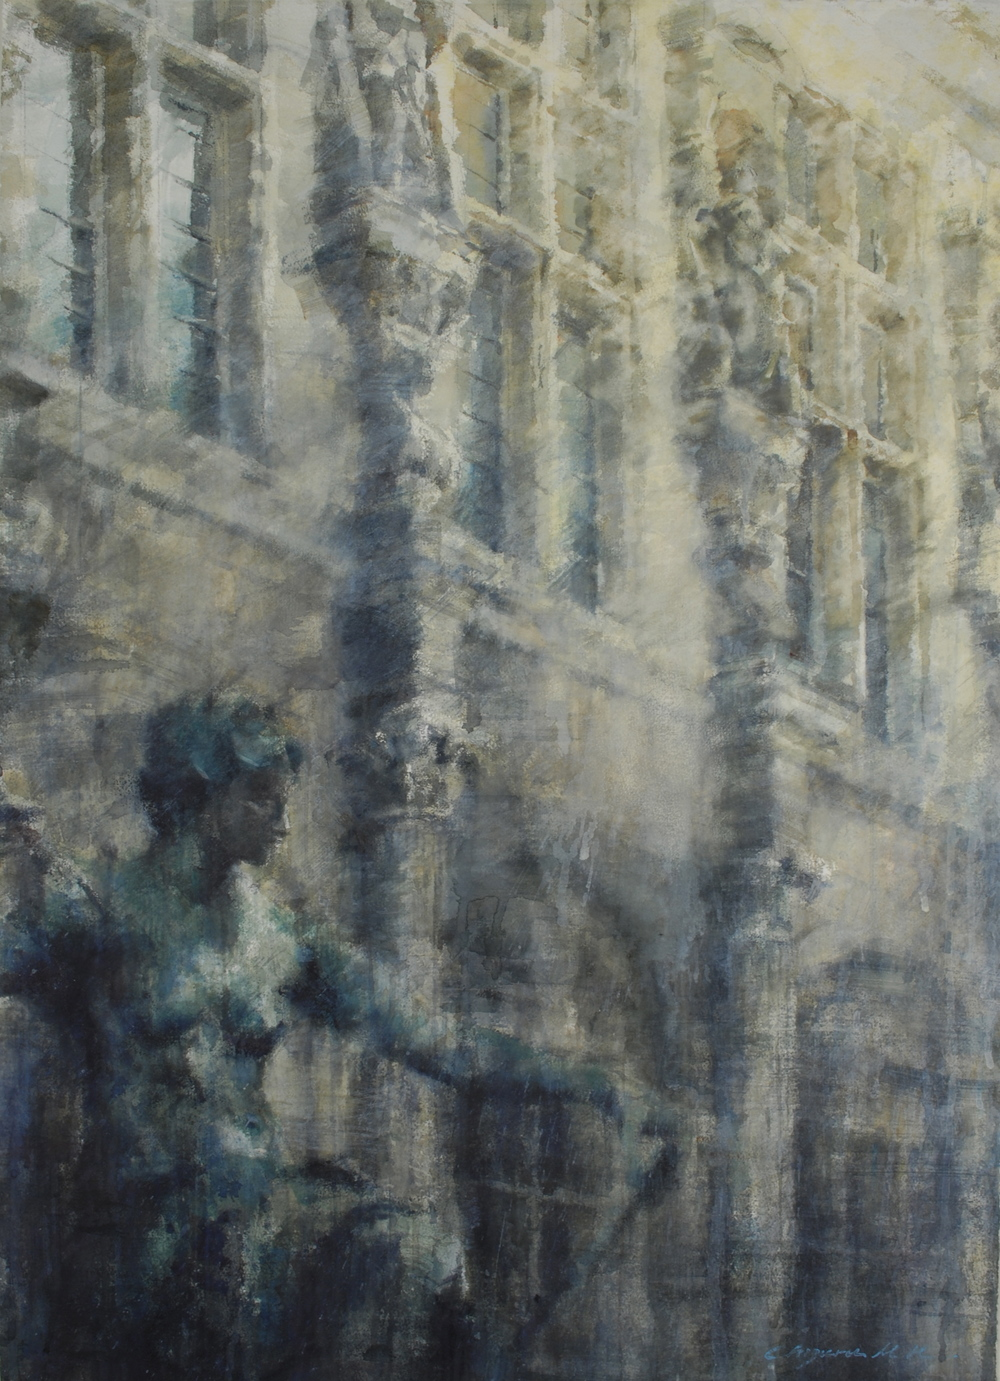 Hotel de Ville, Paris, 29x41 inches